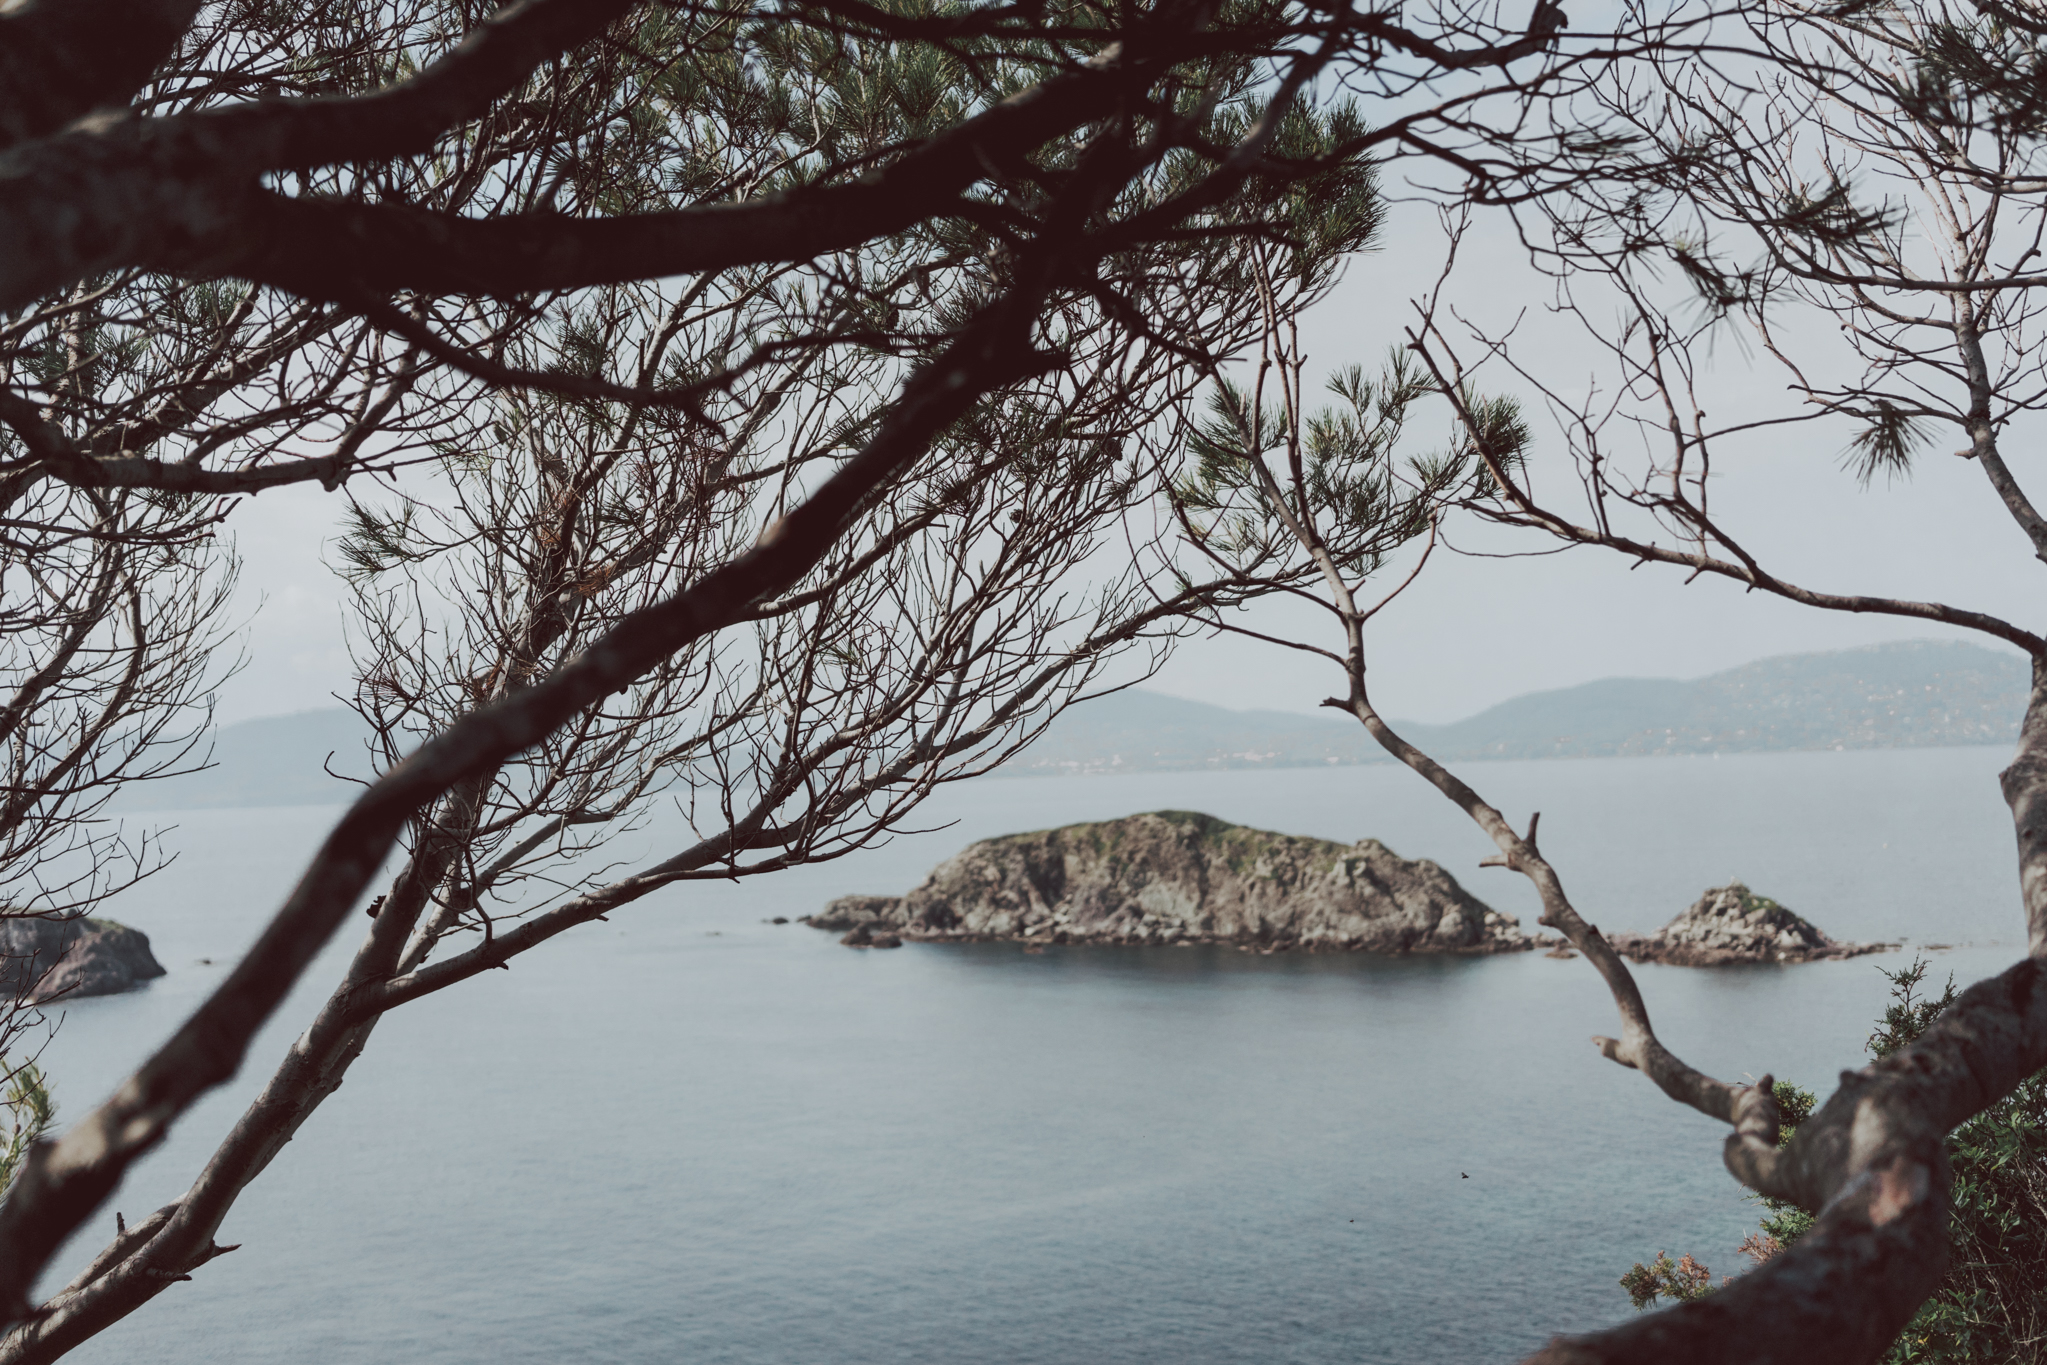 Hiking Trail Giens Things to do in Hyeres South of France - French Rivera #France #Provence #FrenchRivera #CotedAzur